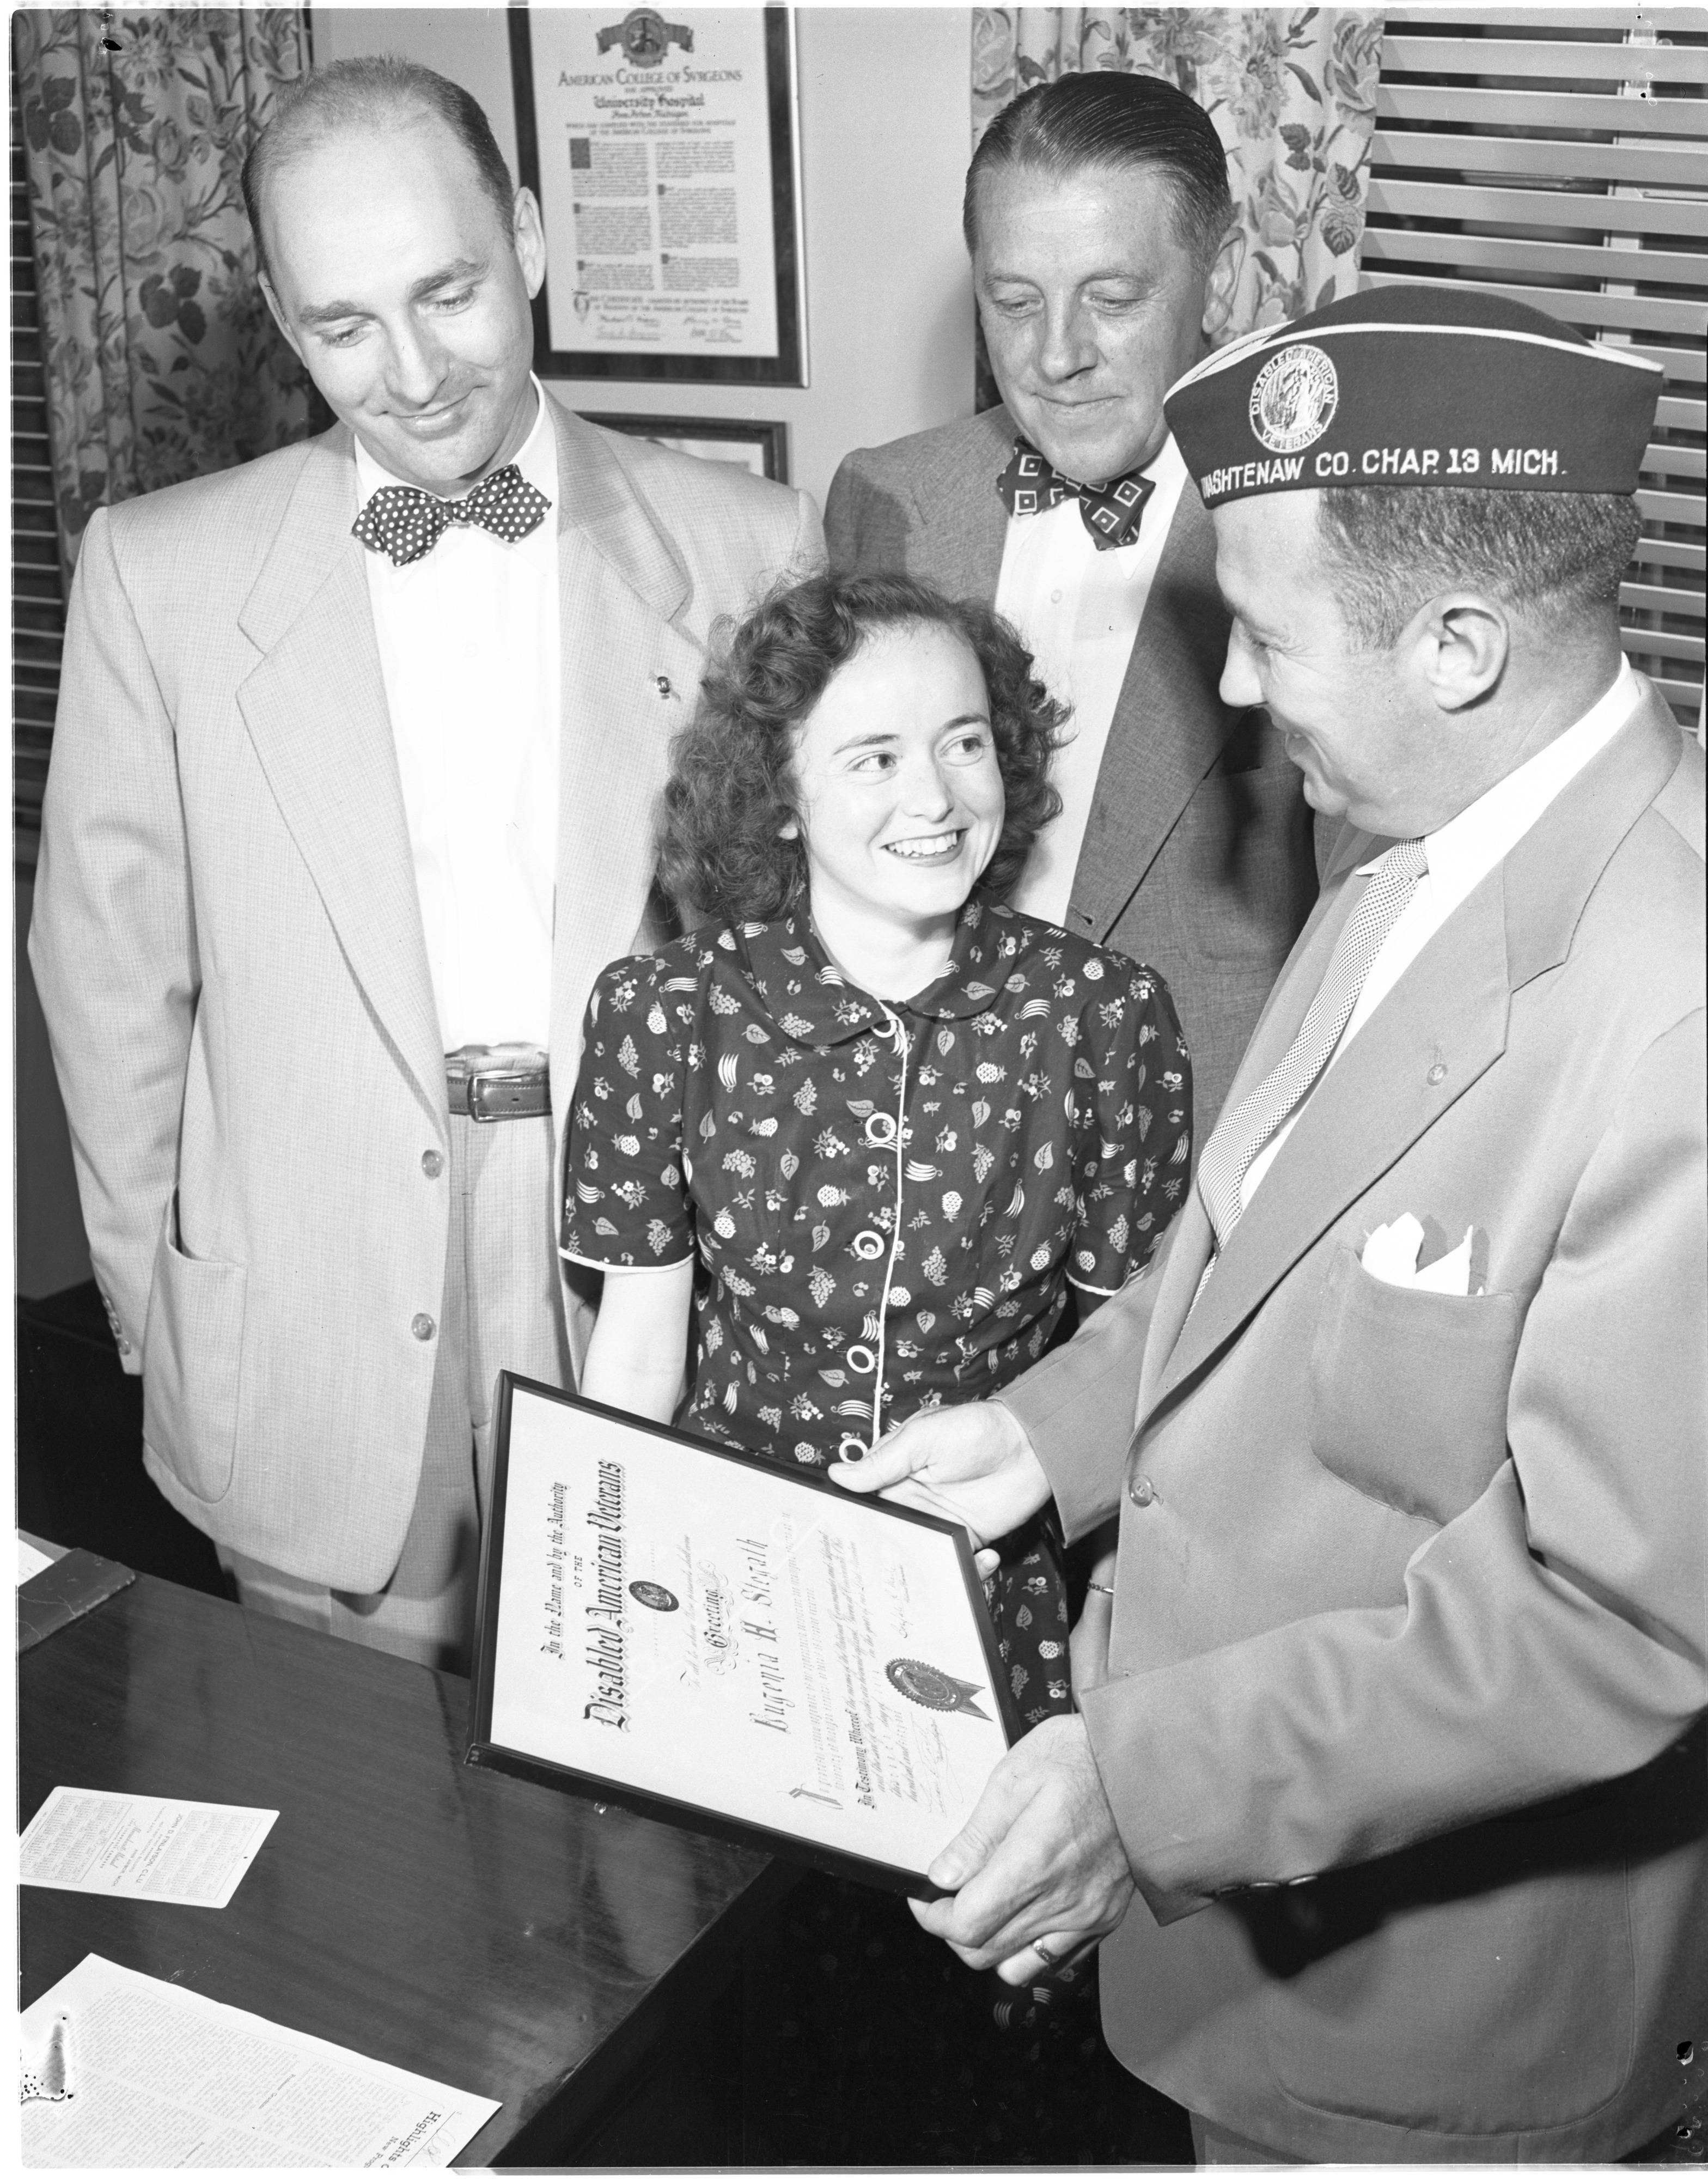 Eugenia Stegath Receives A Certificate Of Merit For Her Work With Disabled Veterans At University Hospital, July 1951 image